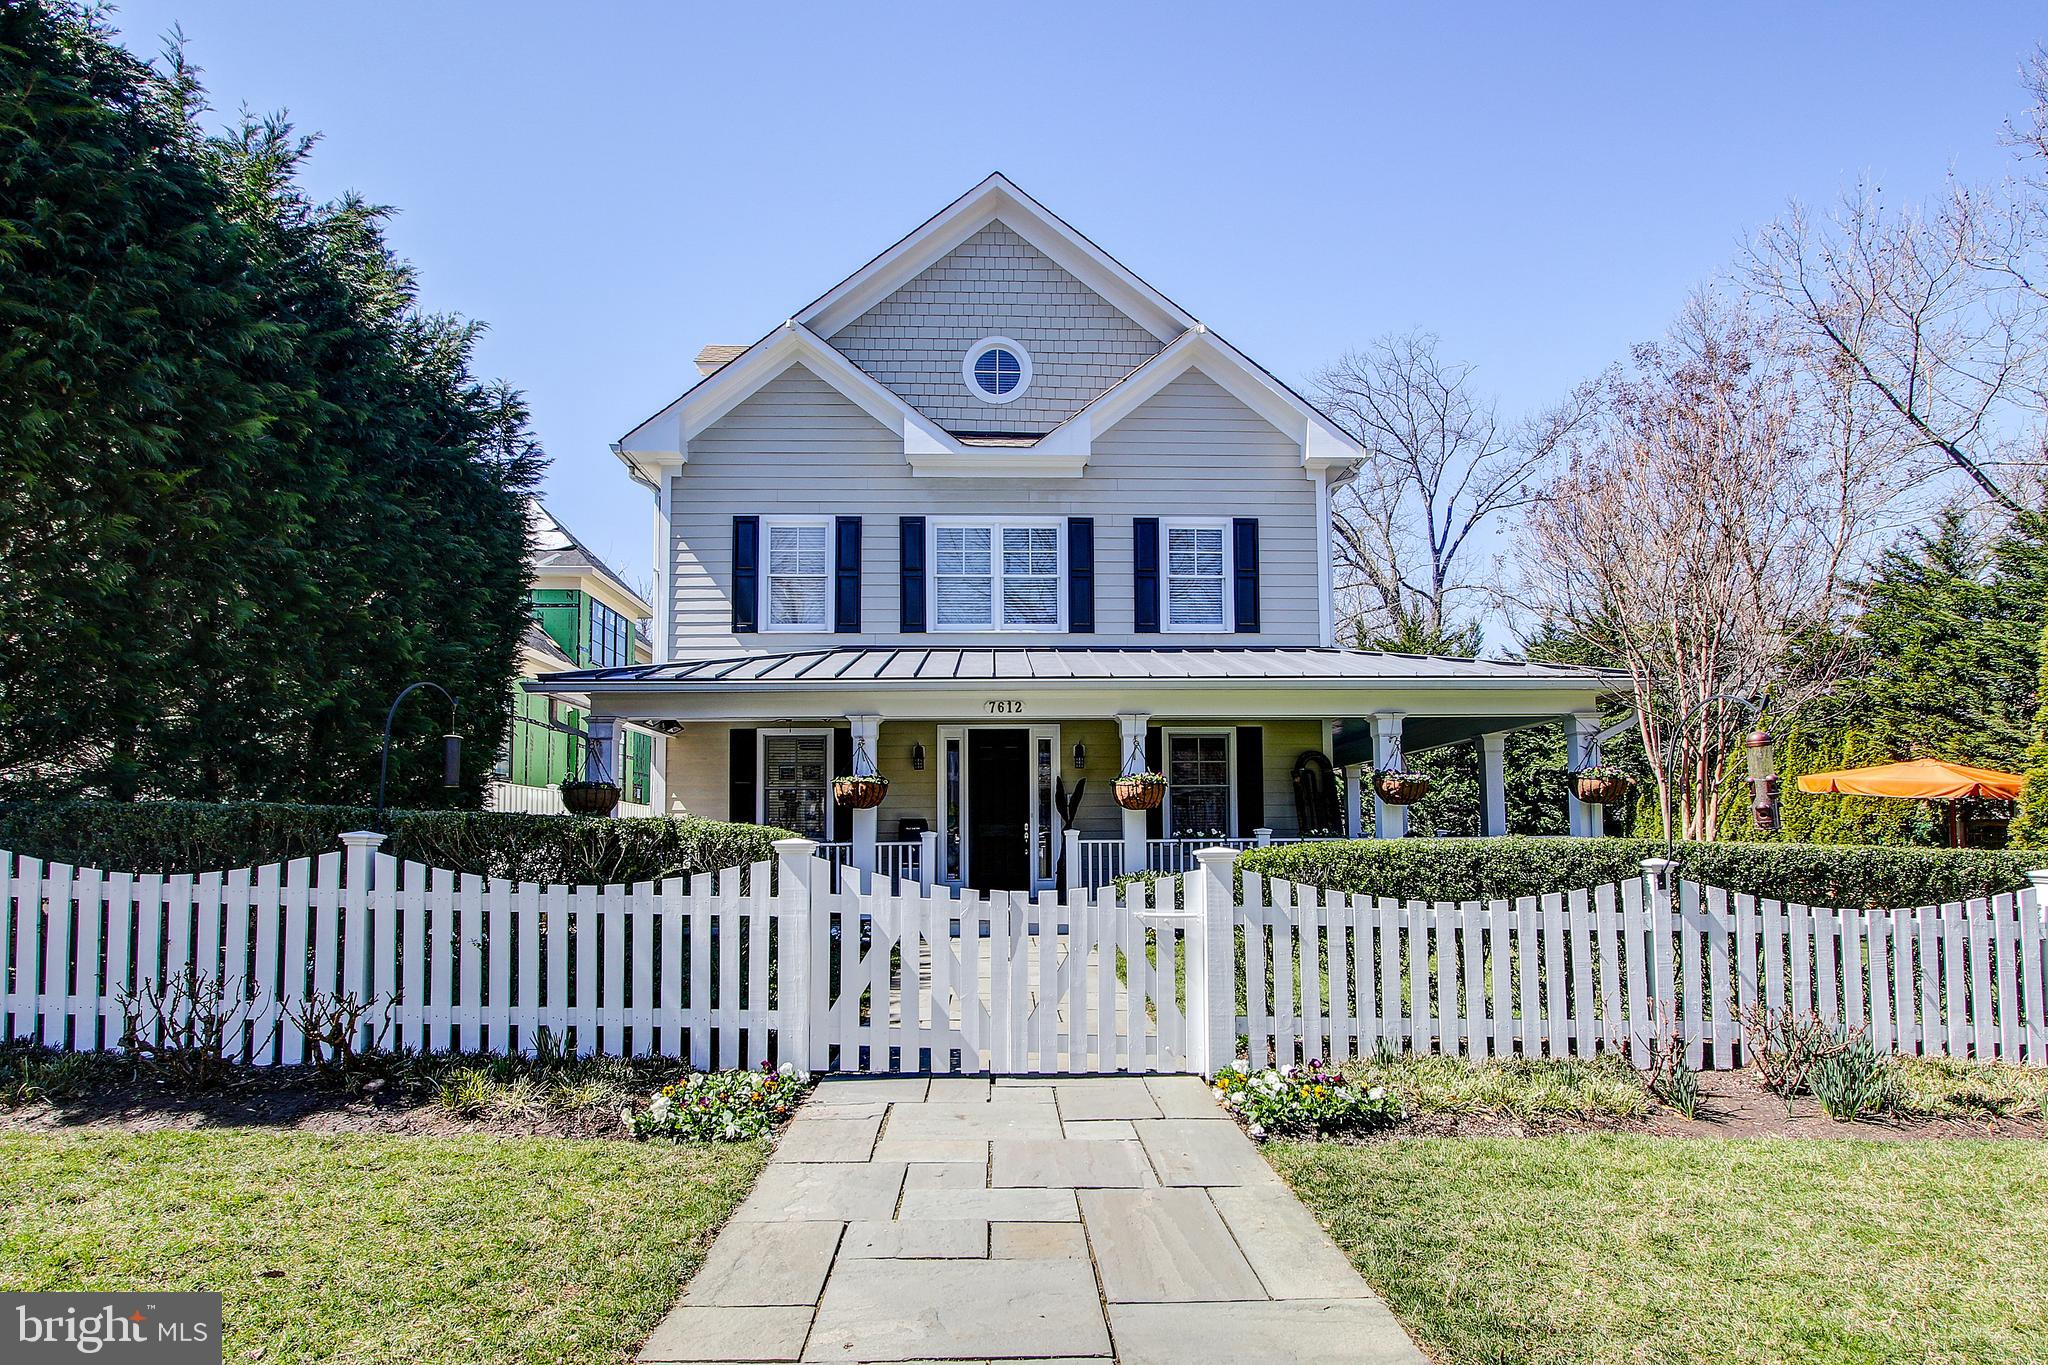 7612 EXETER ROAD, BETHESDA, MD 20814